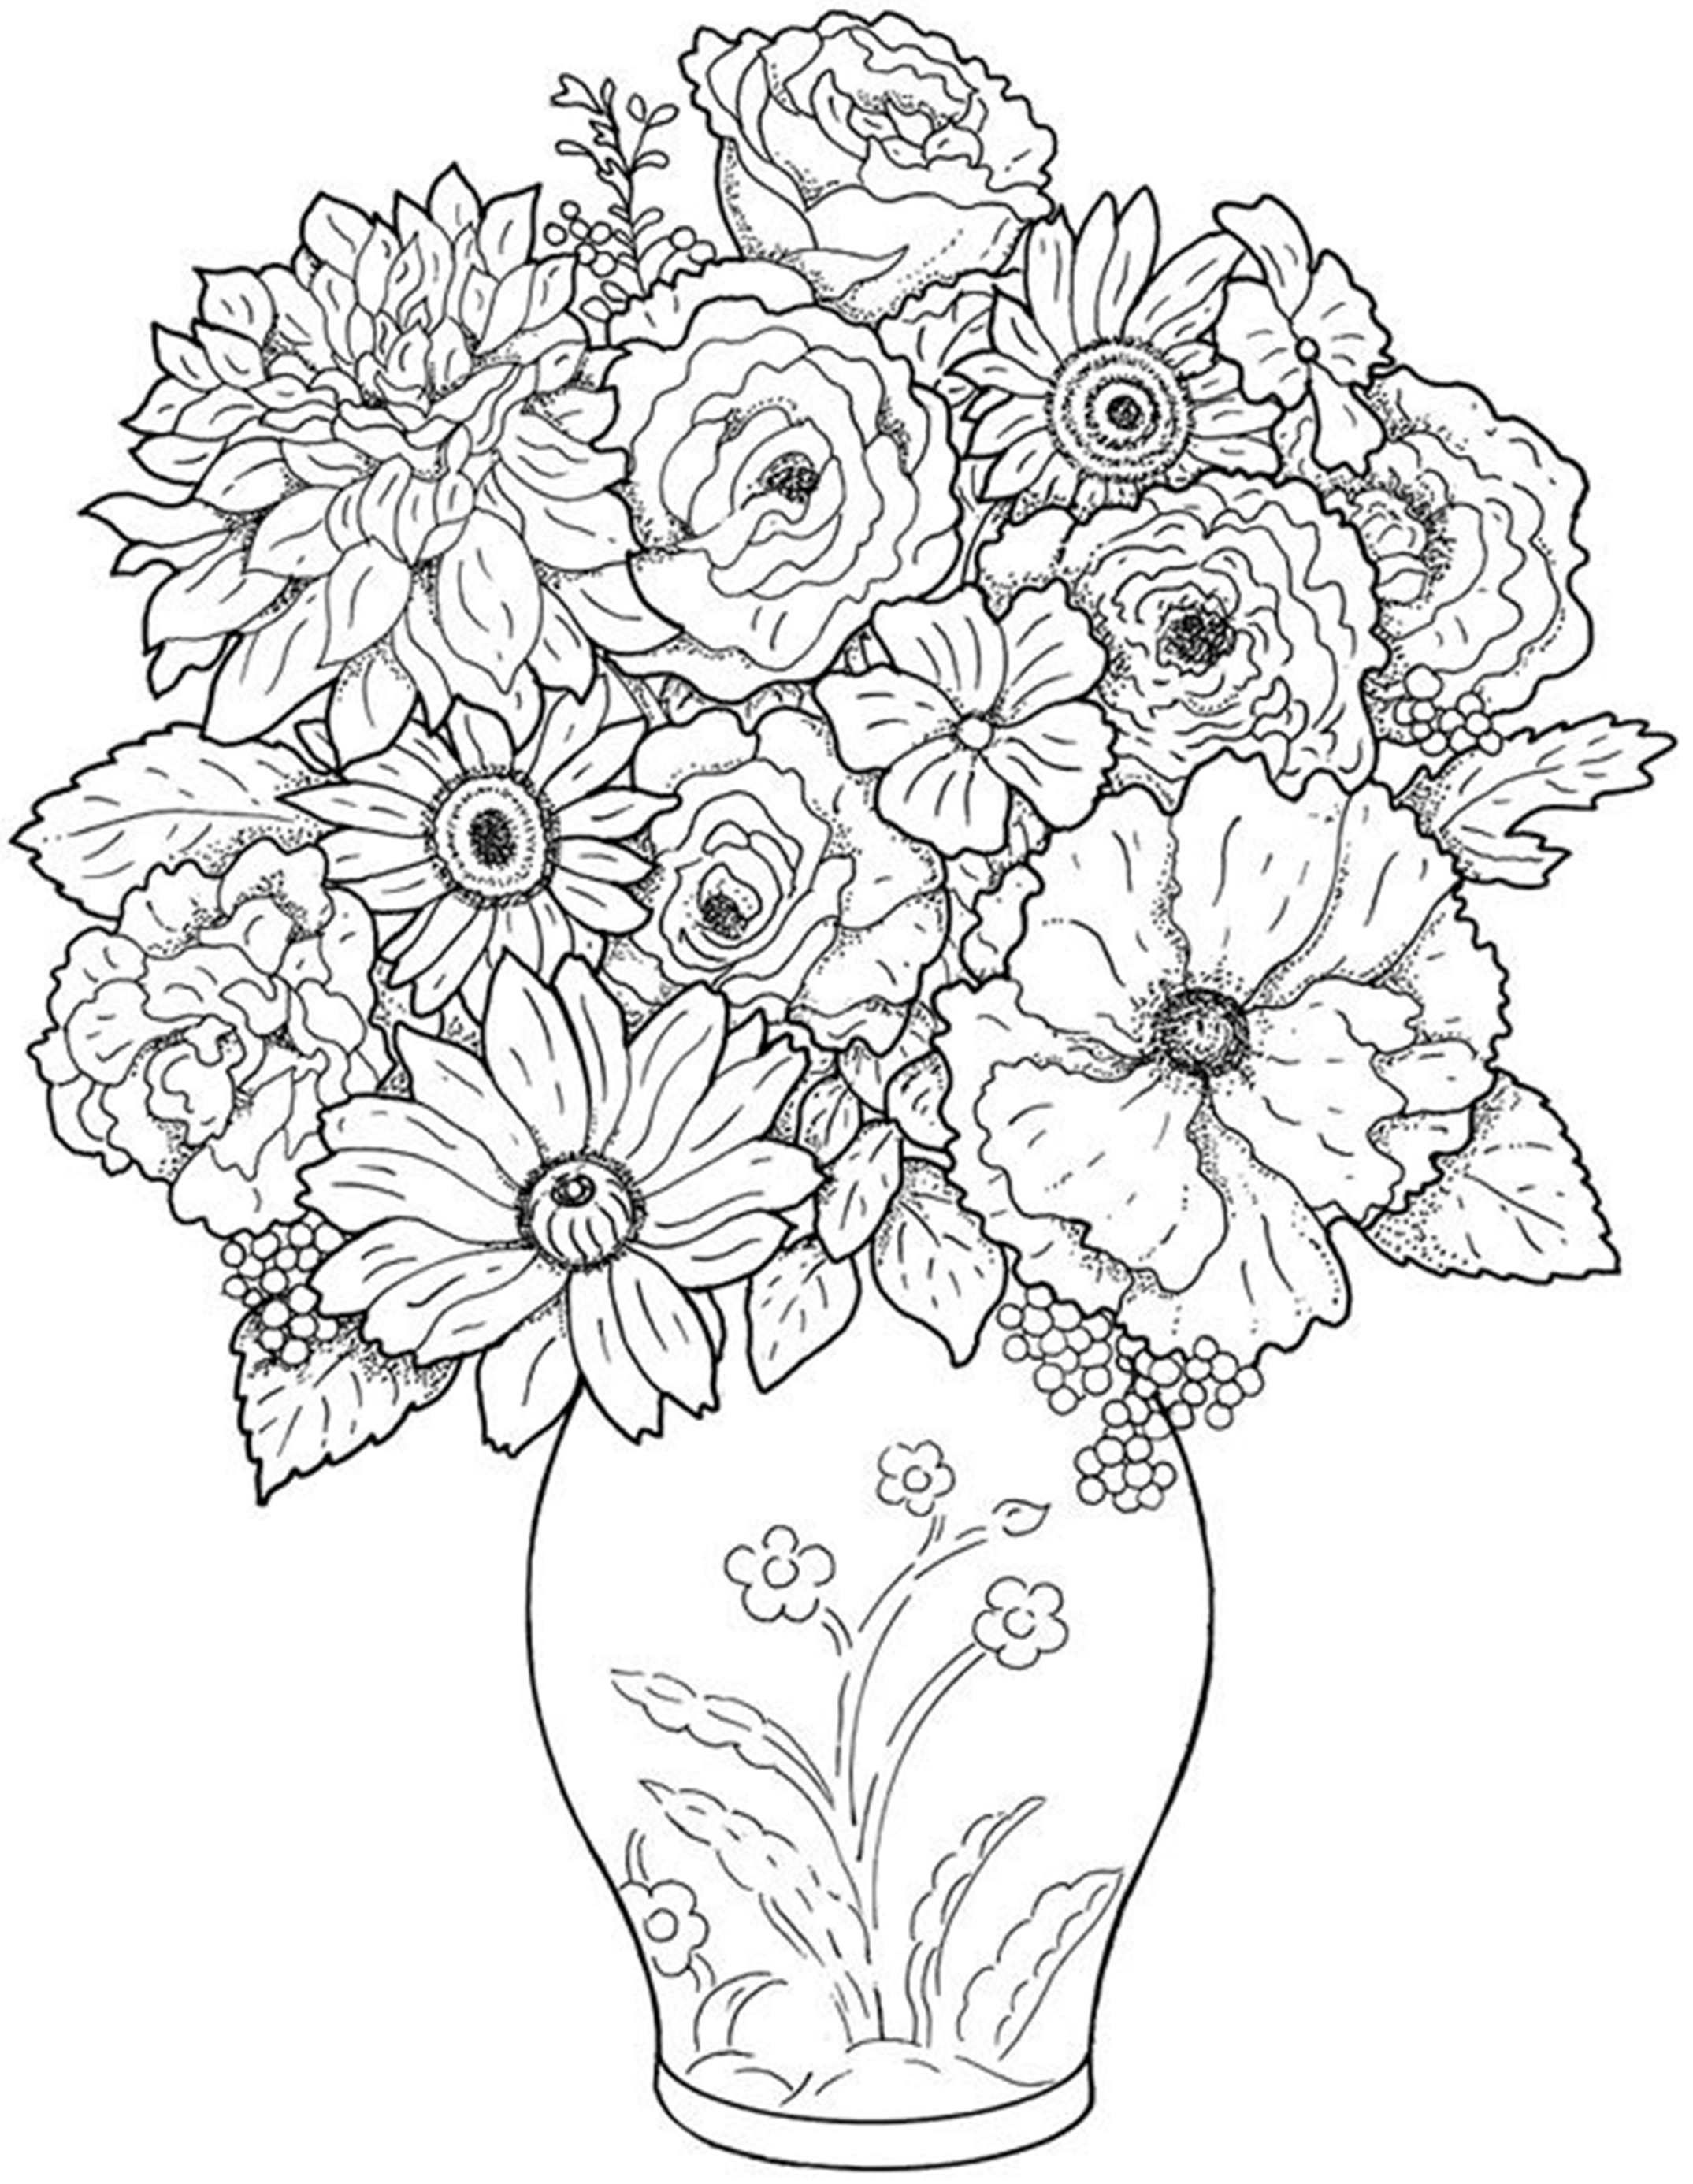 Free Printable Flower Coloring Pages Brilliant Free Printable Flower Coloring Pages For Kids  Best Coloring .